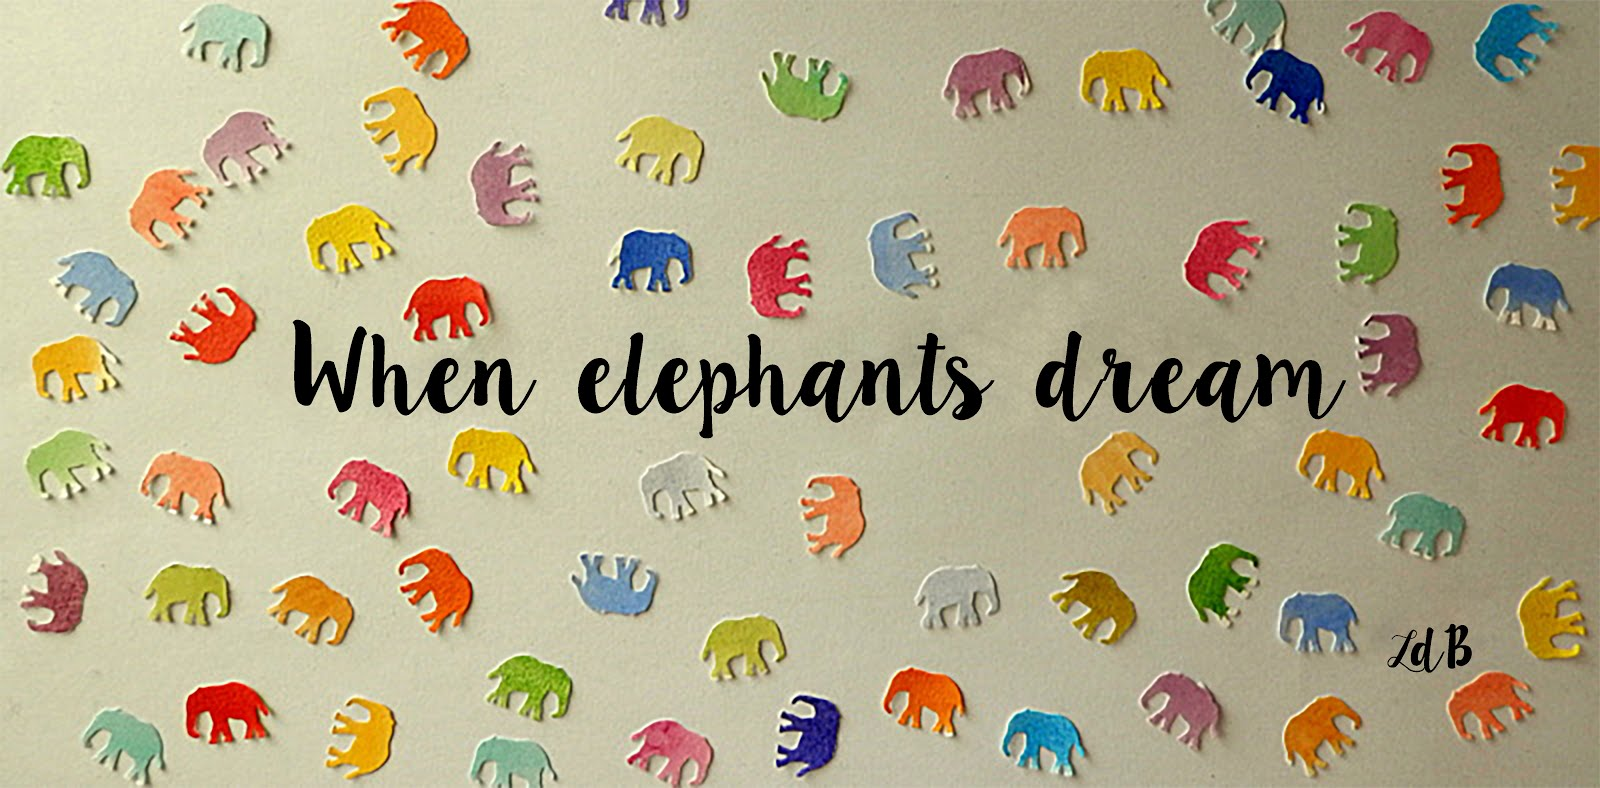 WHEN ELEPHANTS DREAM